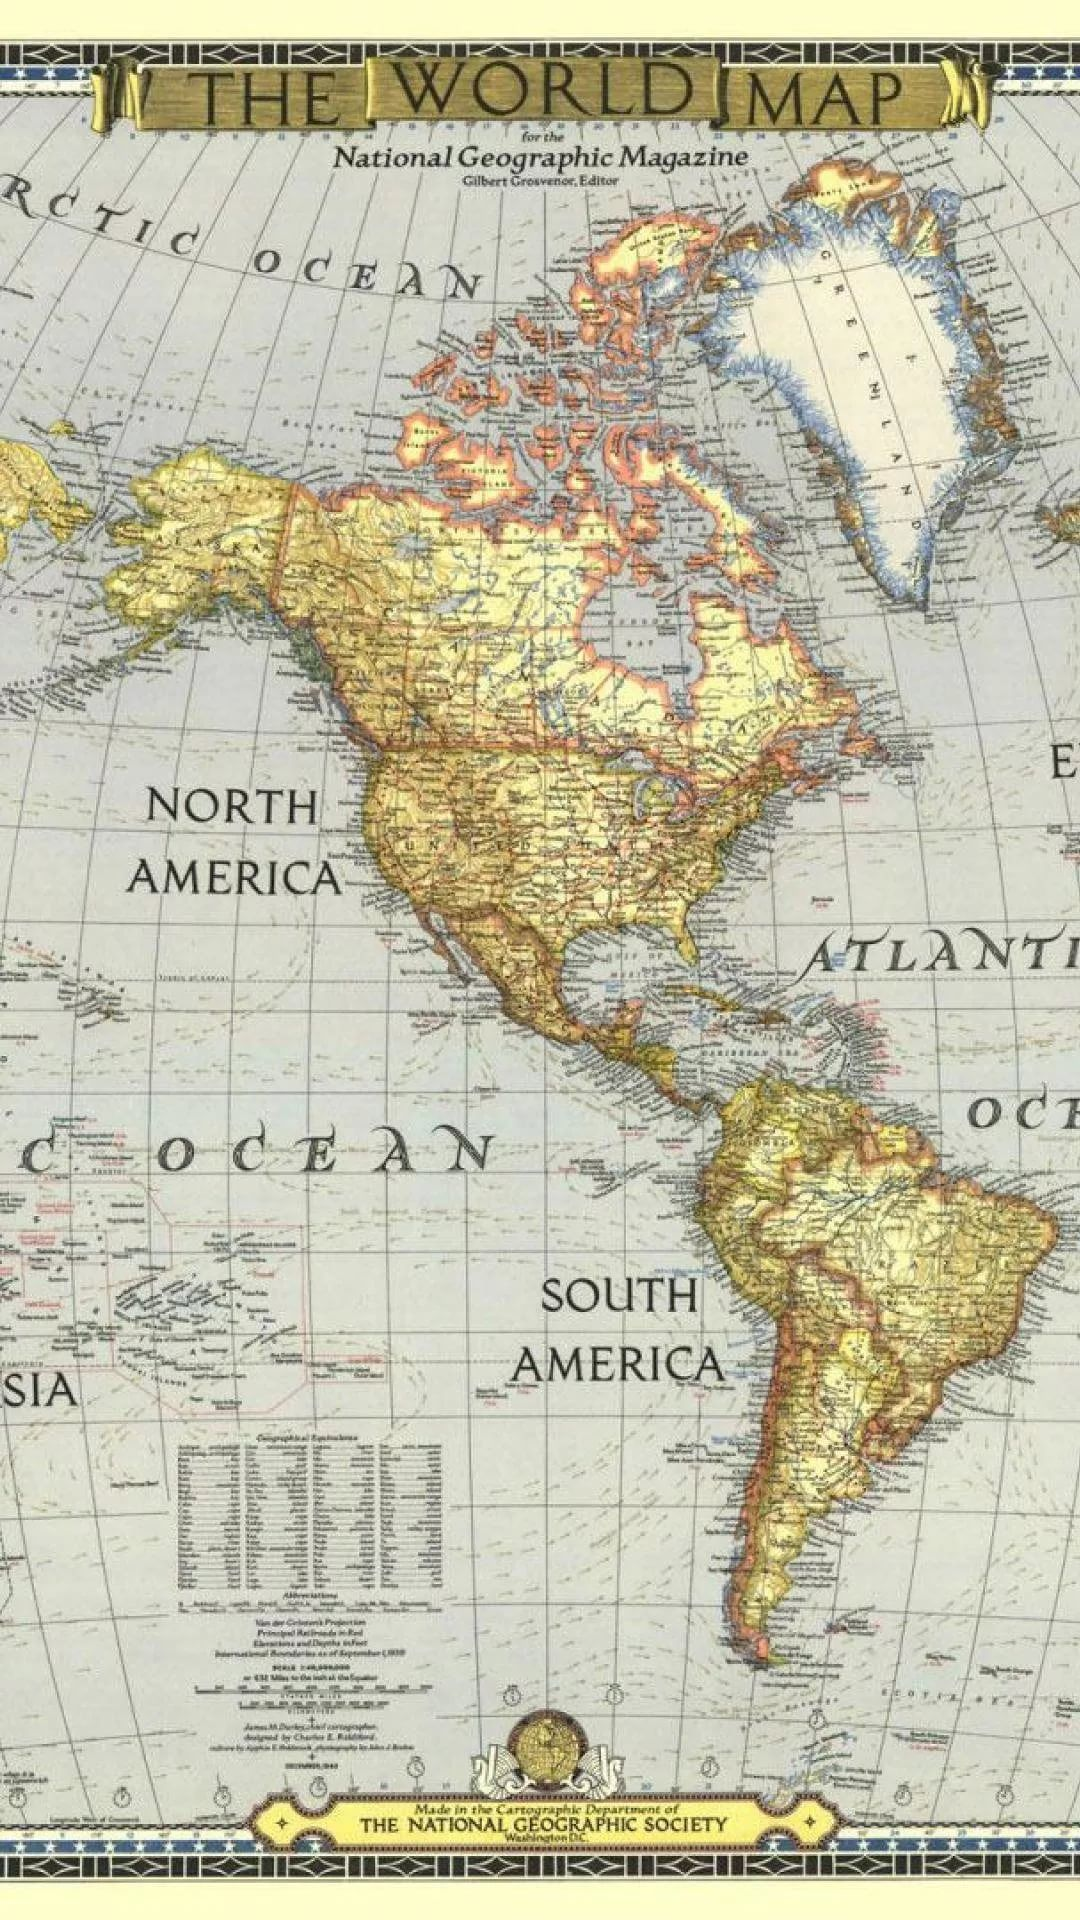 World Map wallpaper for android